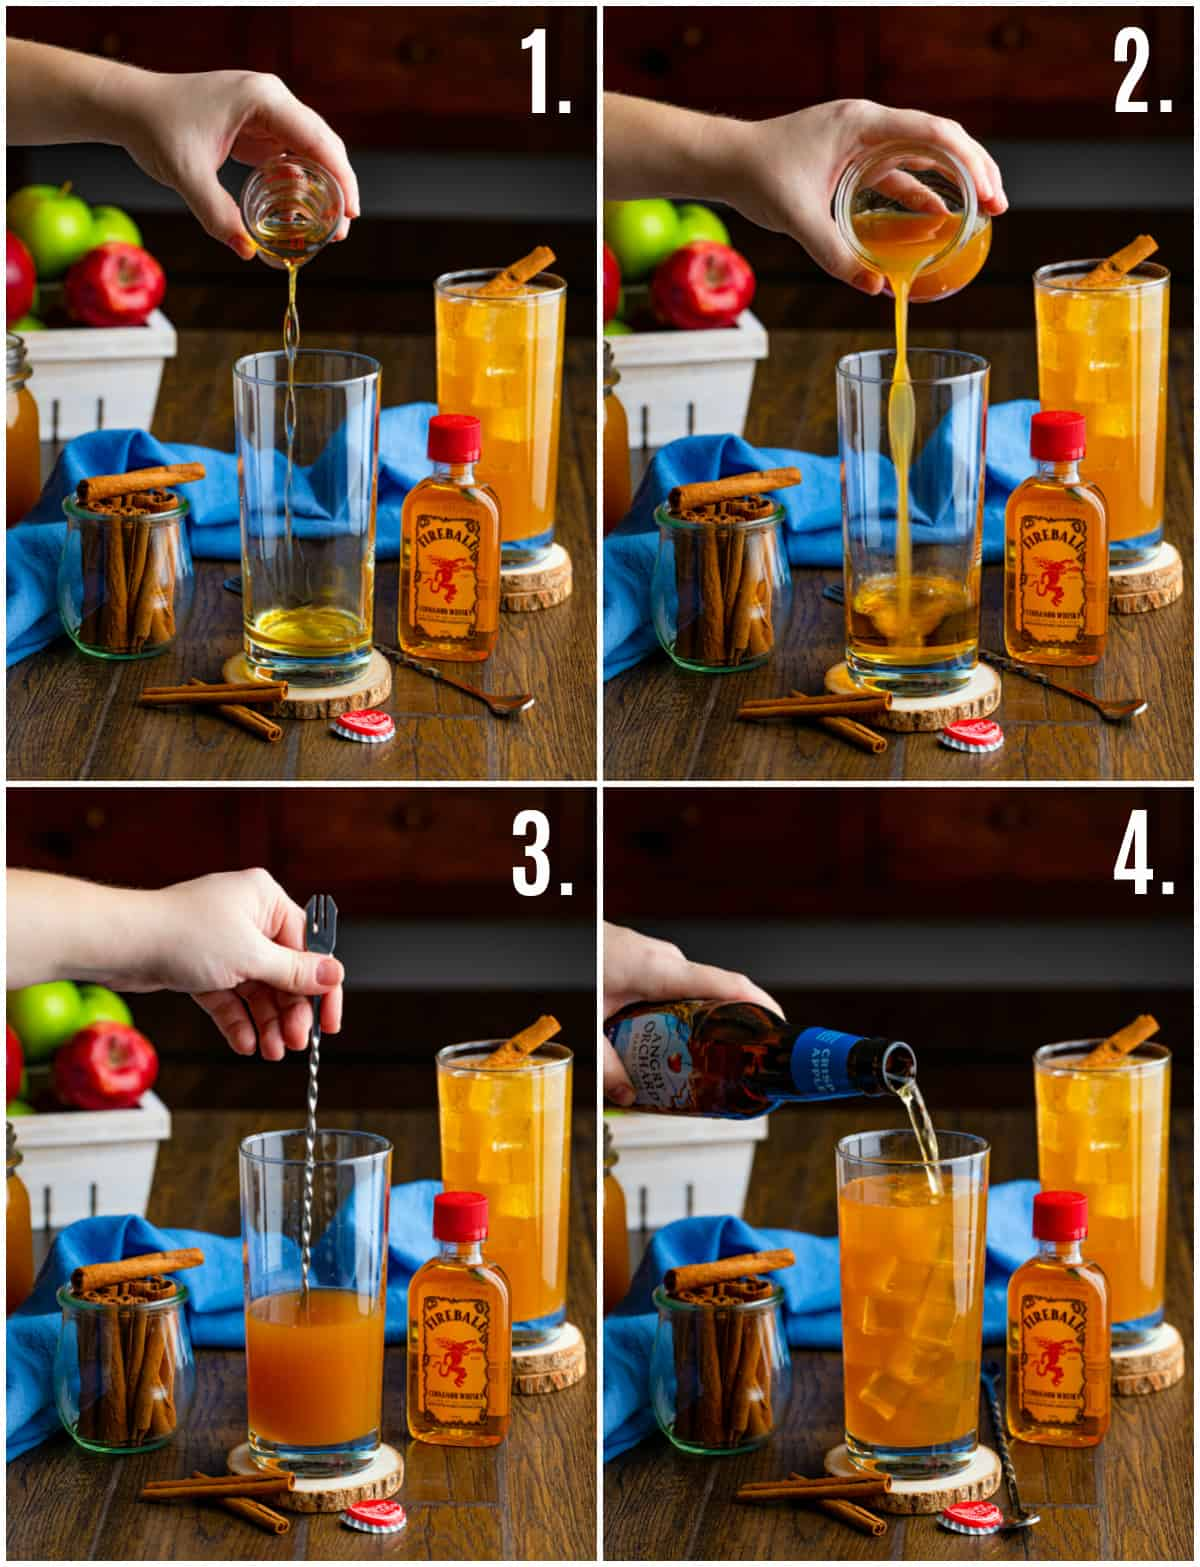 Step by step photos on how to make Fireball Hard Cider